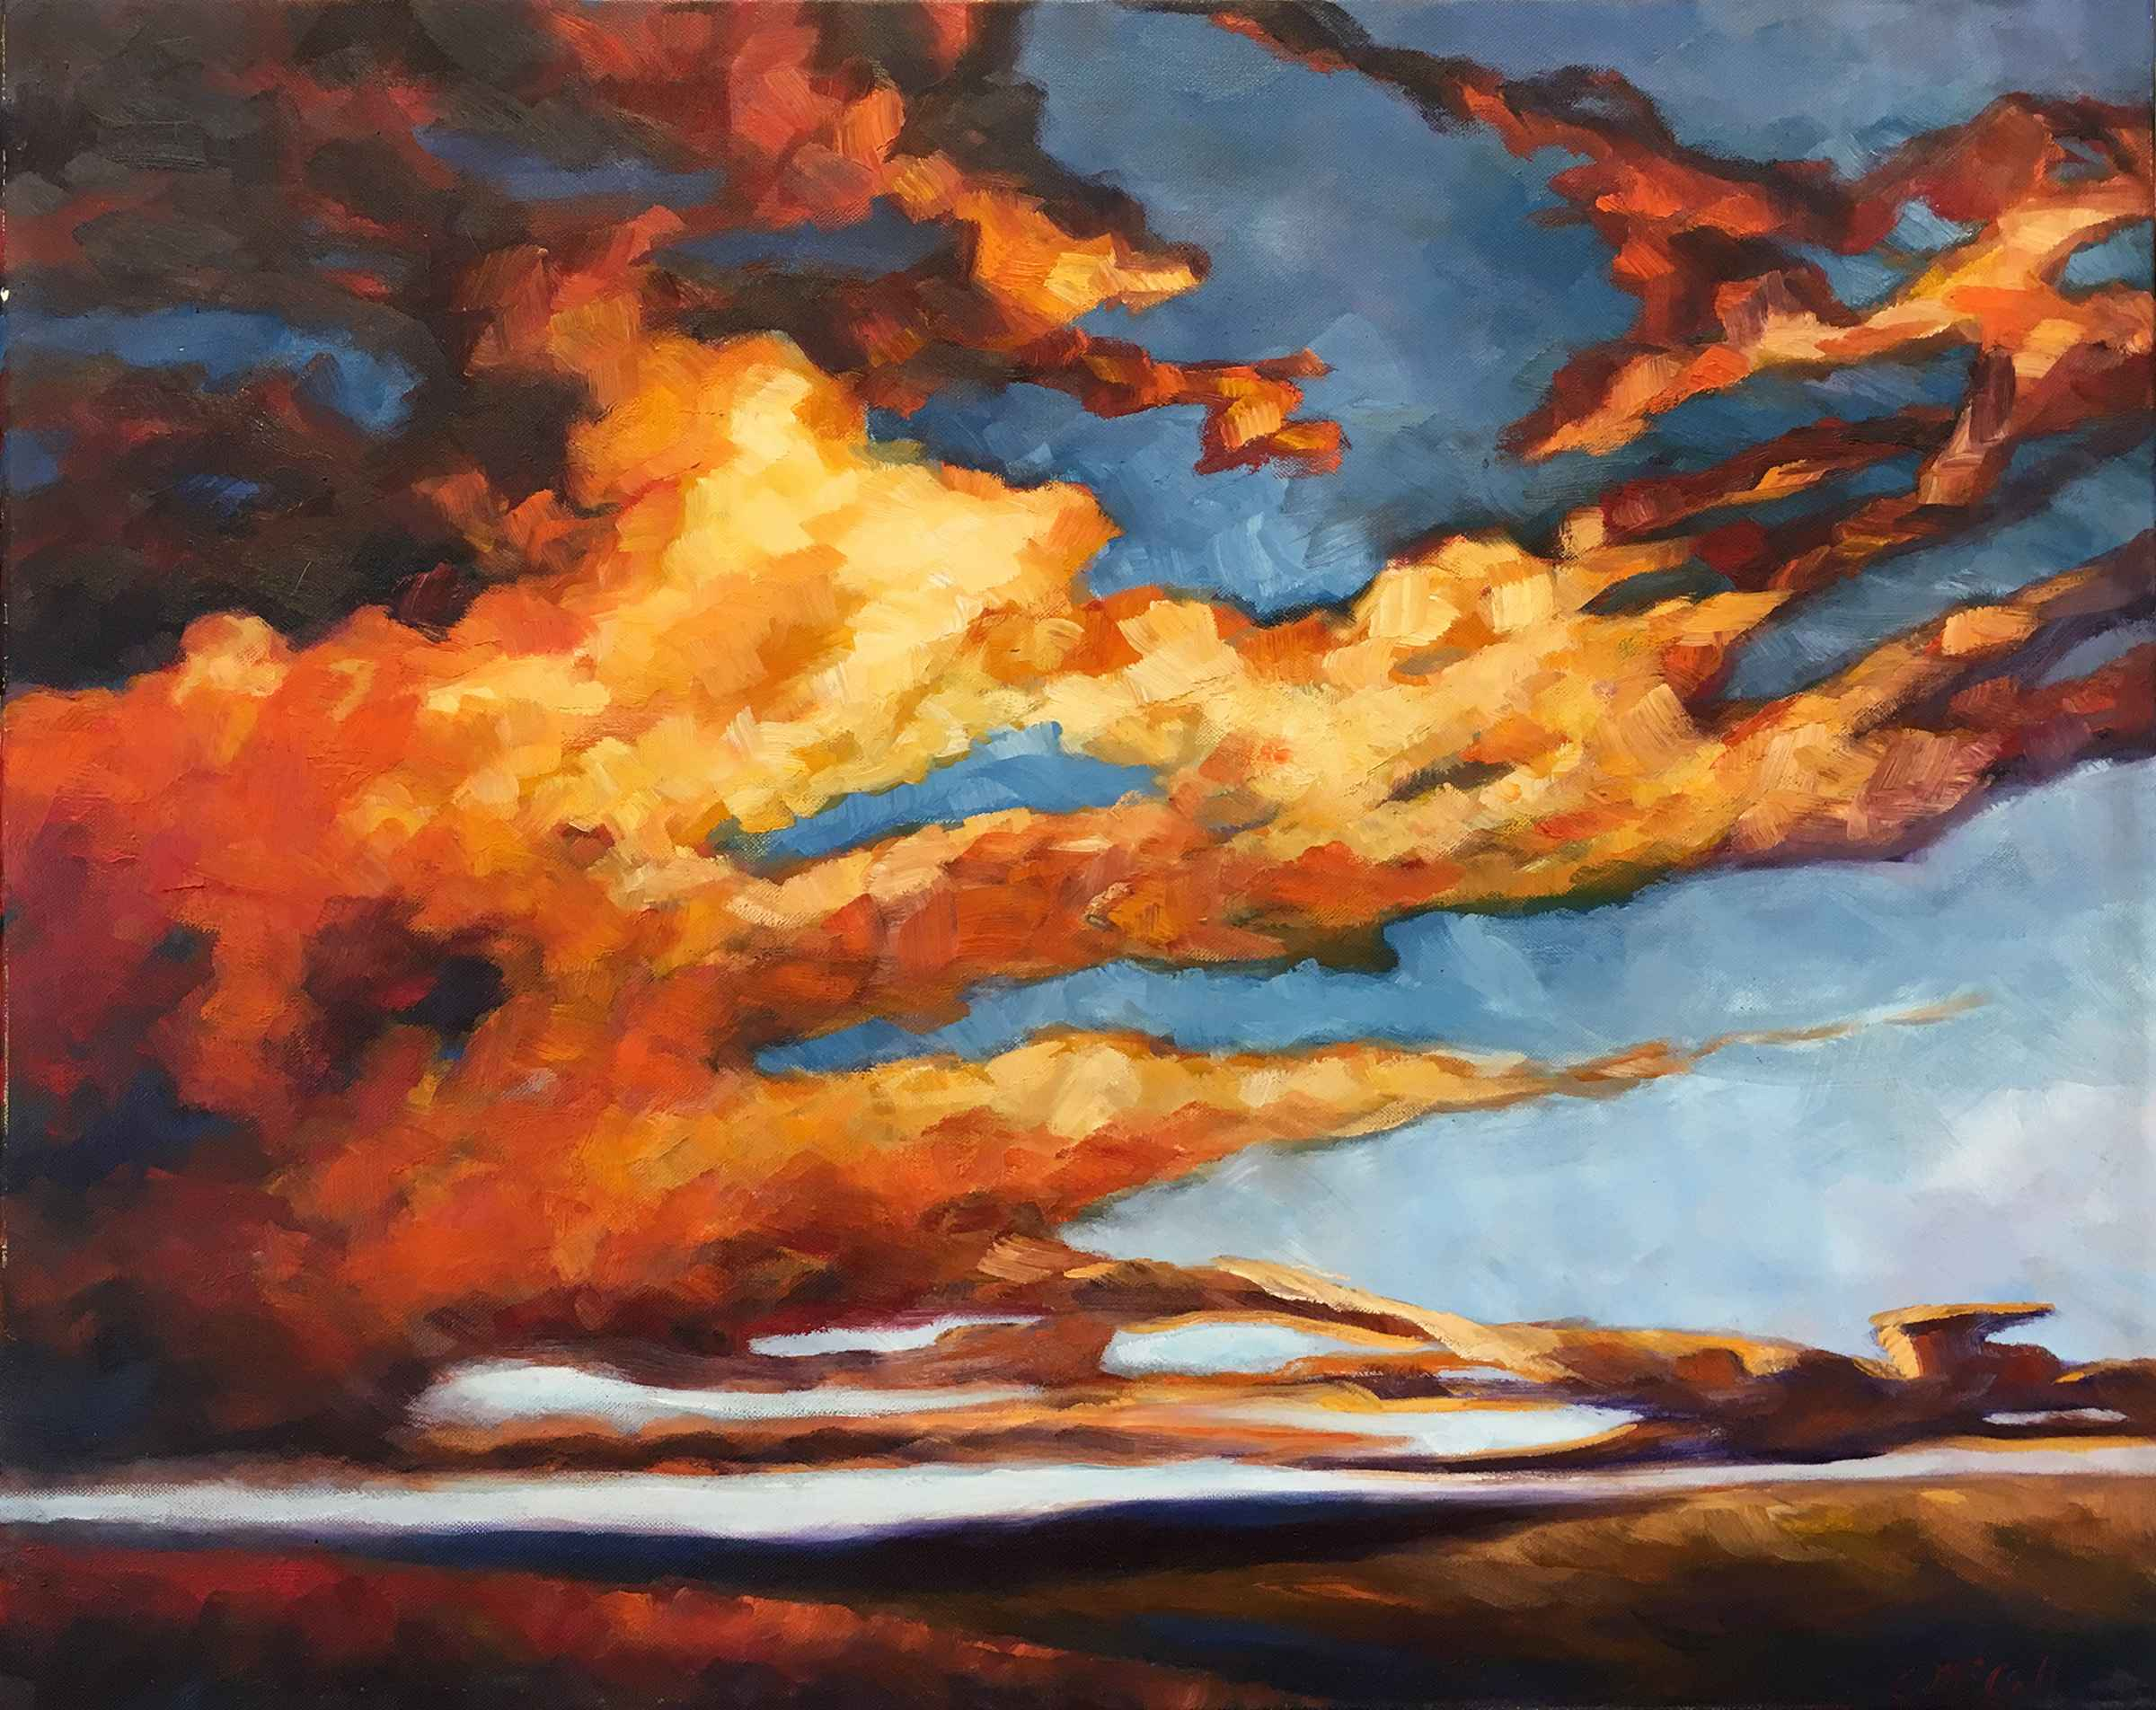 This is Flint Hills Golden Su... by  Carol McCall  art collection of SNW Gallery & Custom Frames represented by SNW Gallery & Custom Frames from Olathe, KS - Masterpiece Online